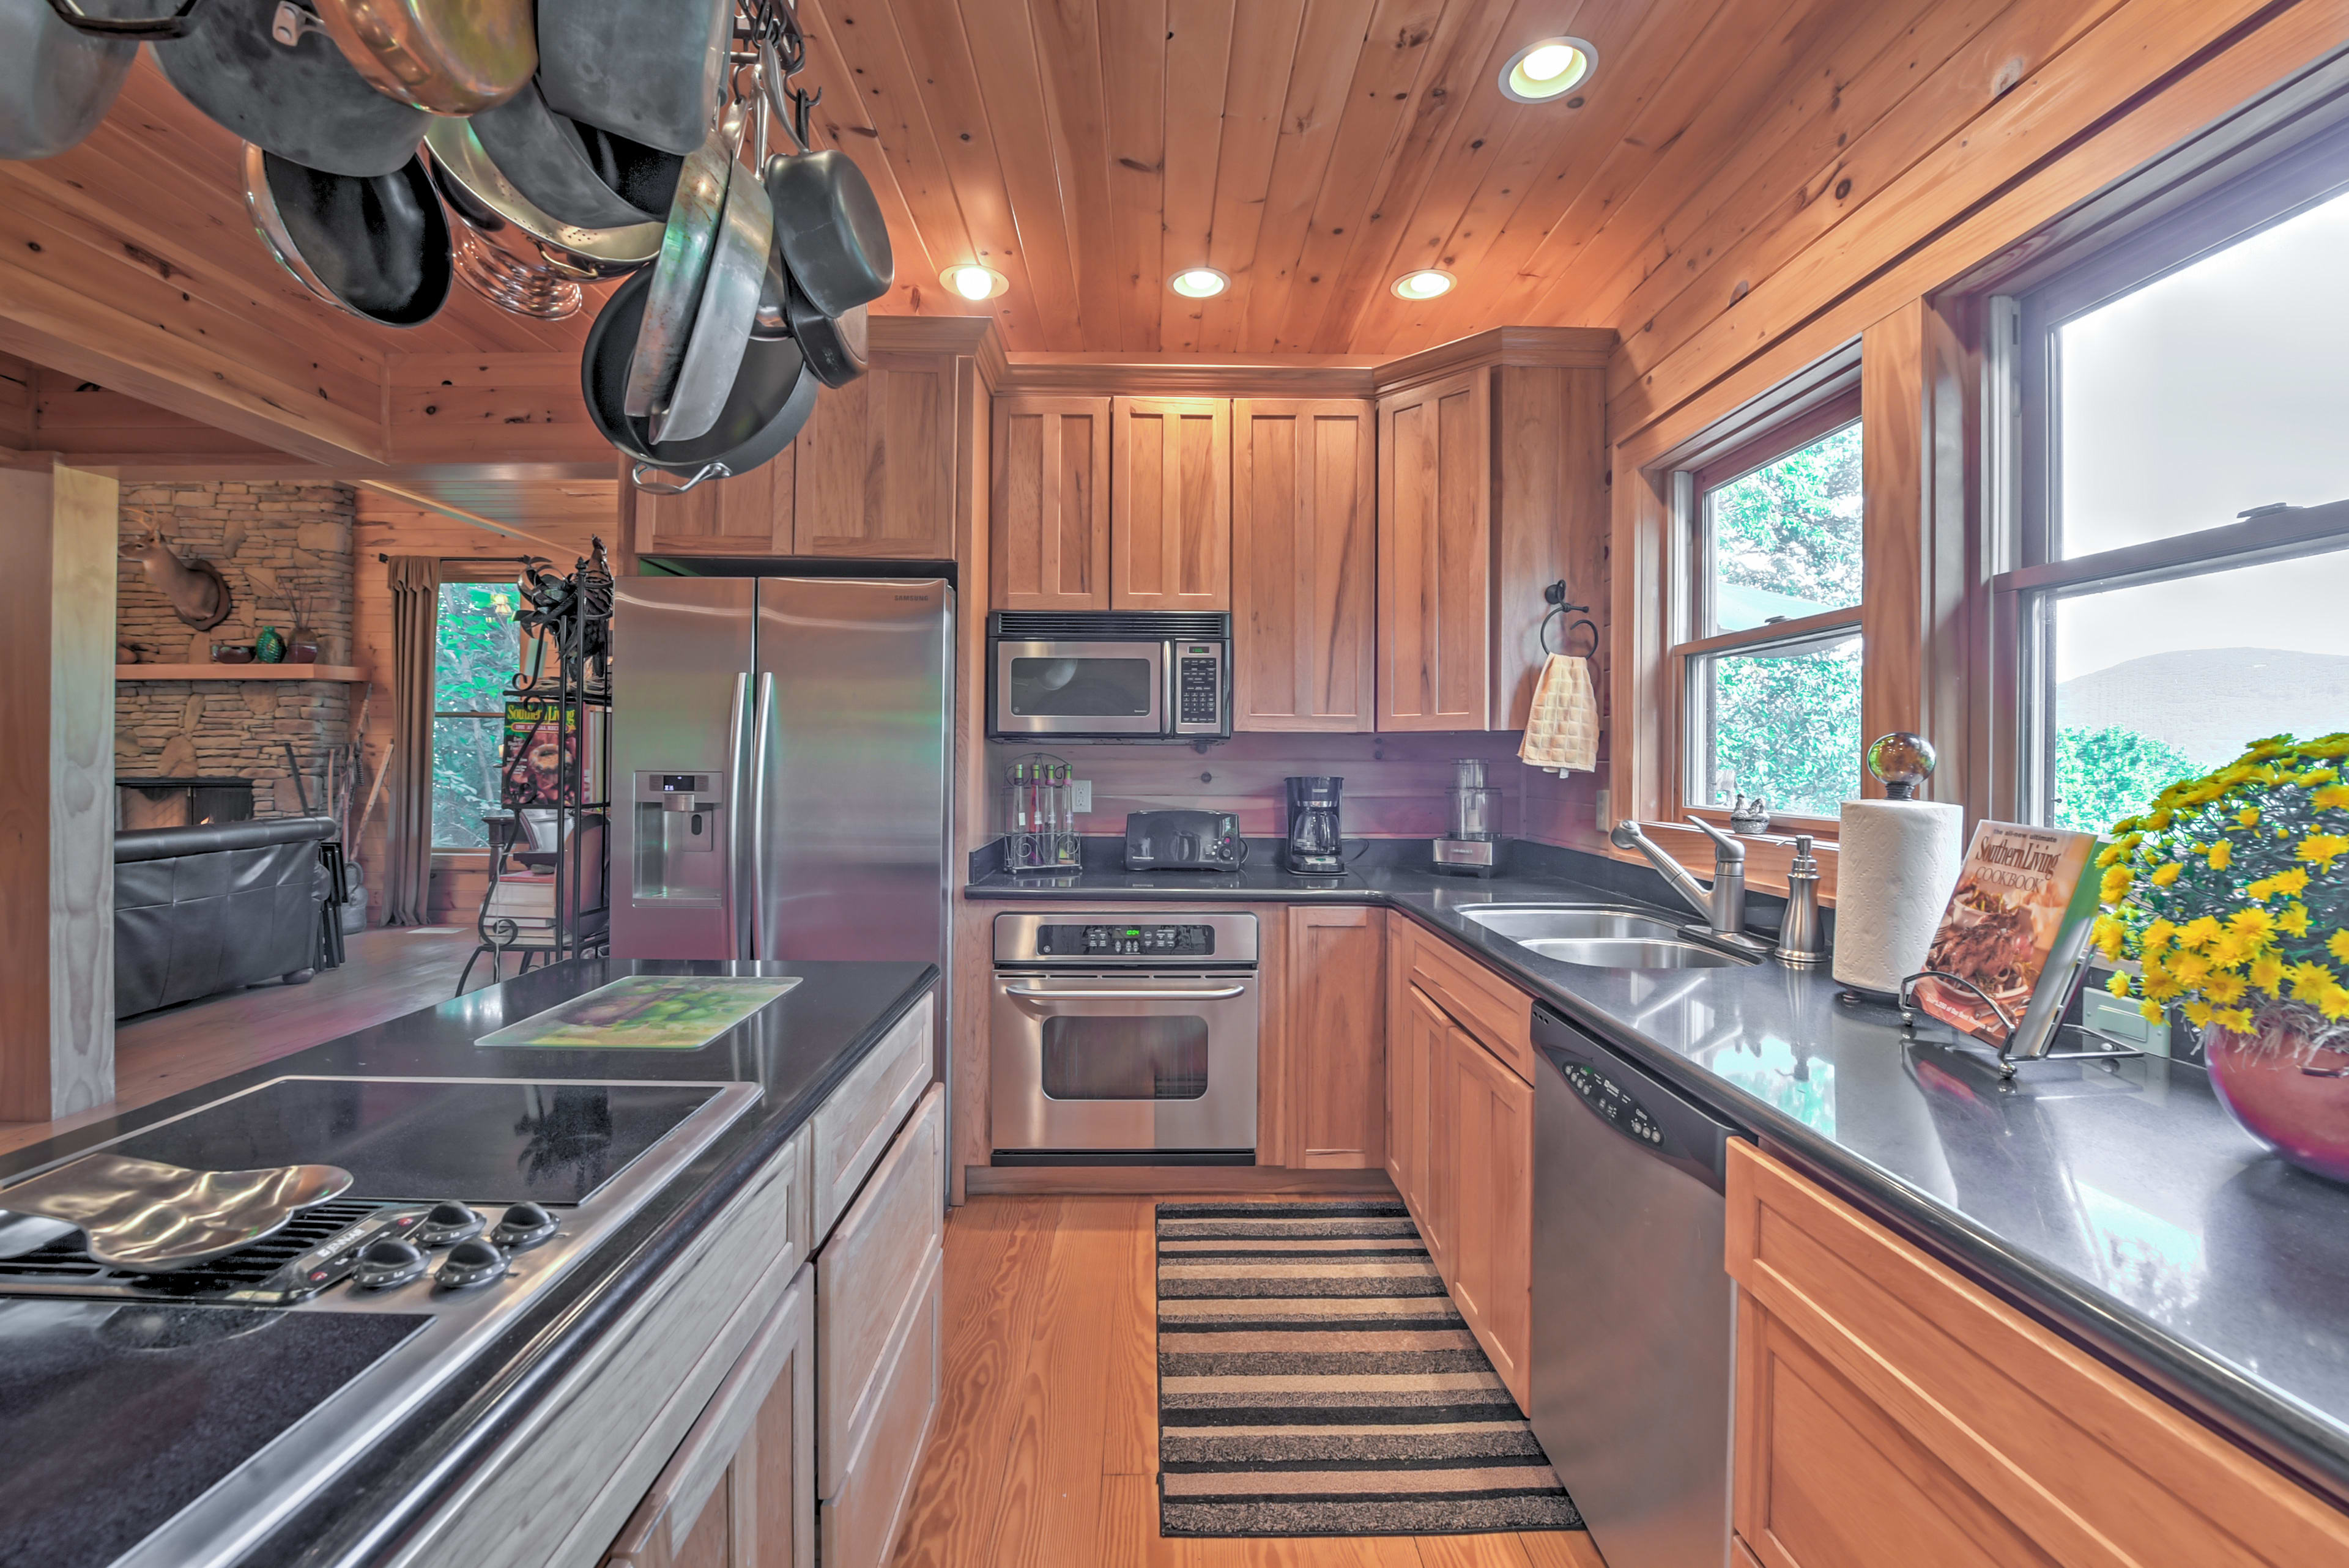 The chef will love the ample counter space and stainless steel appliances.